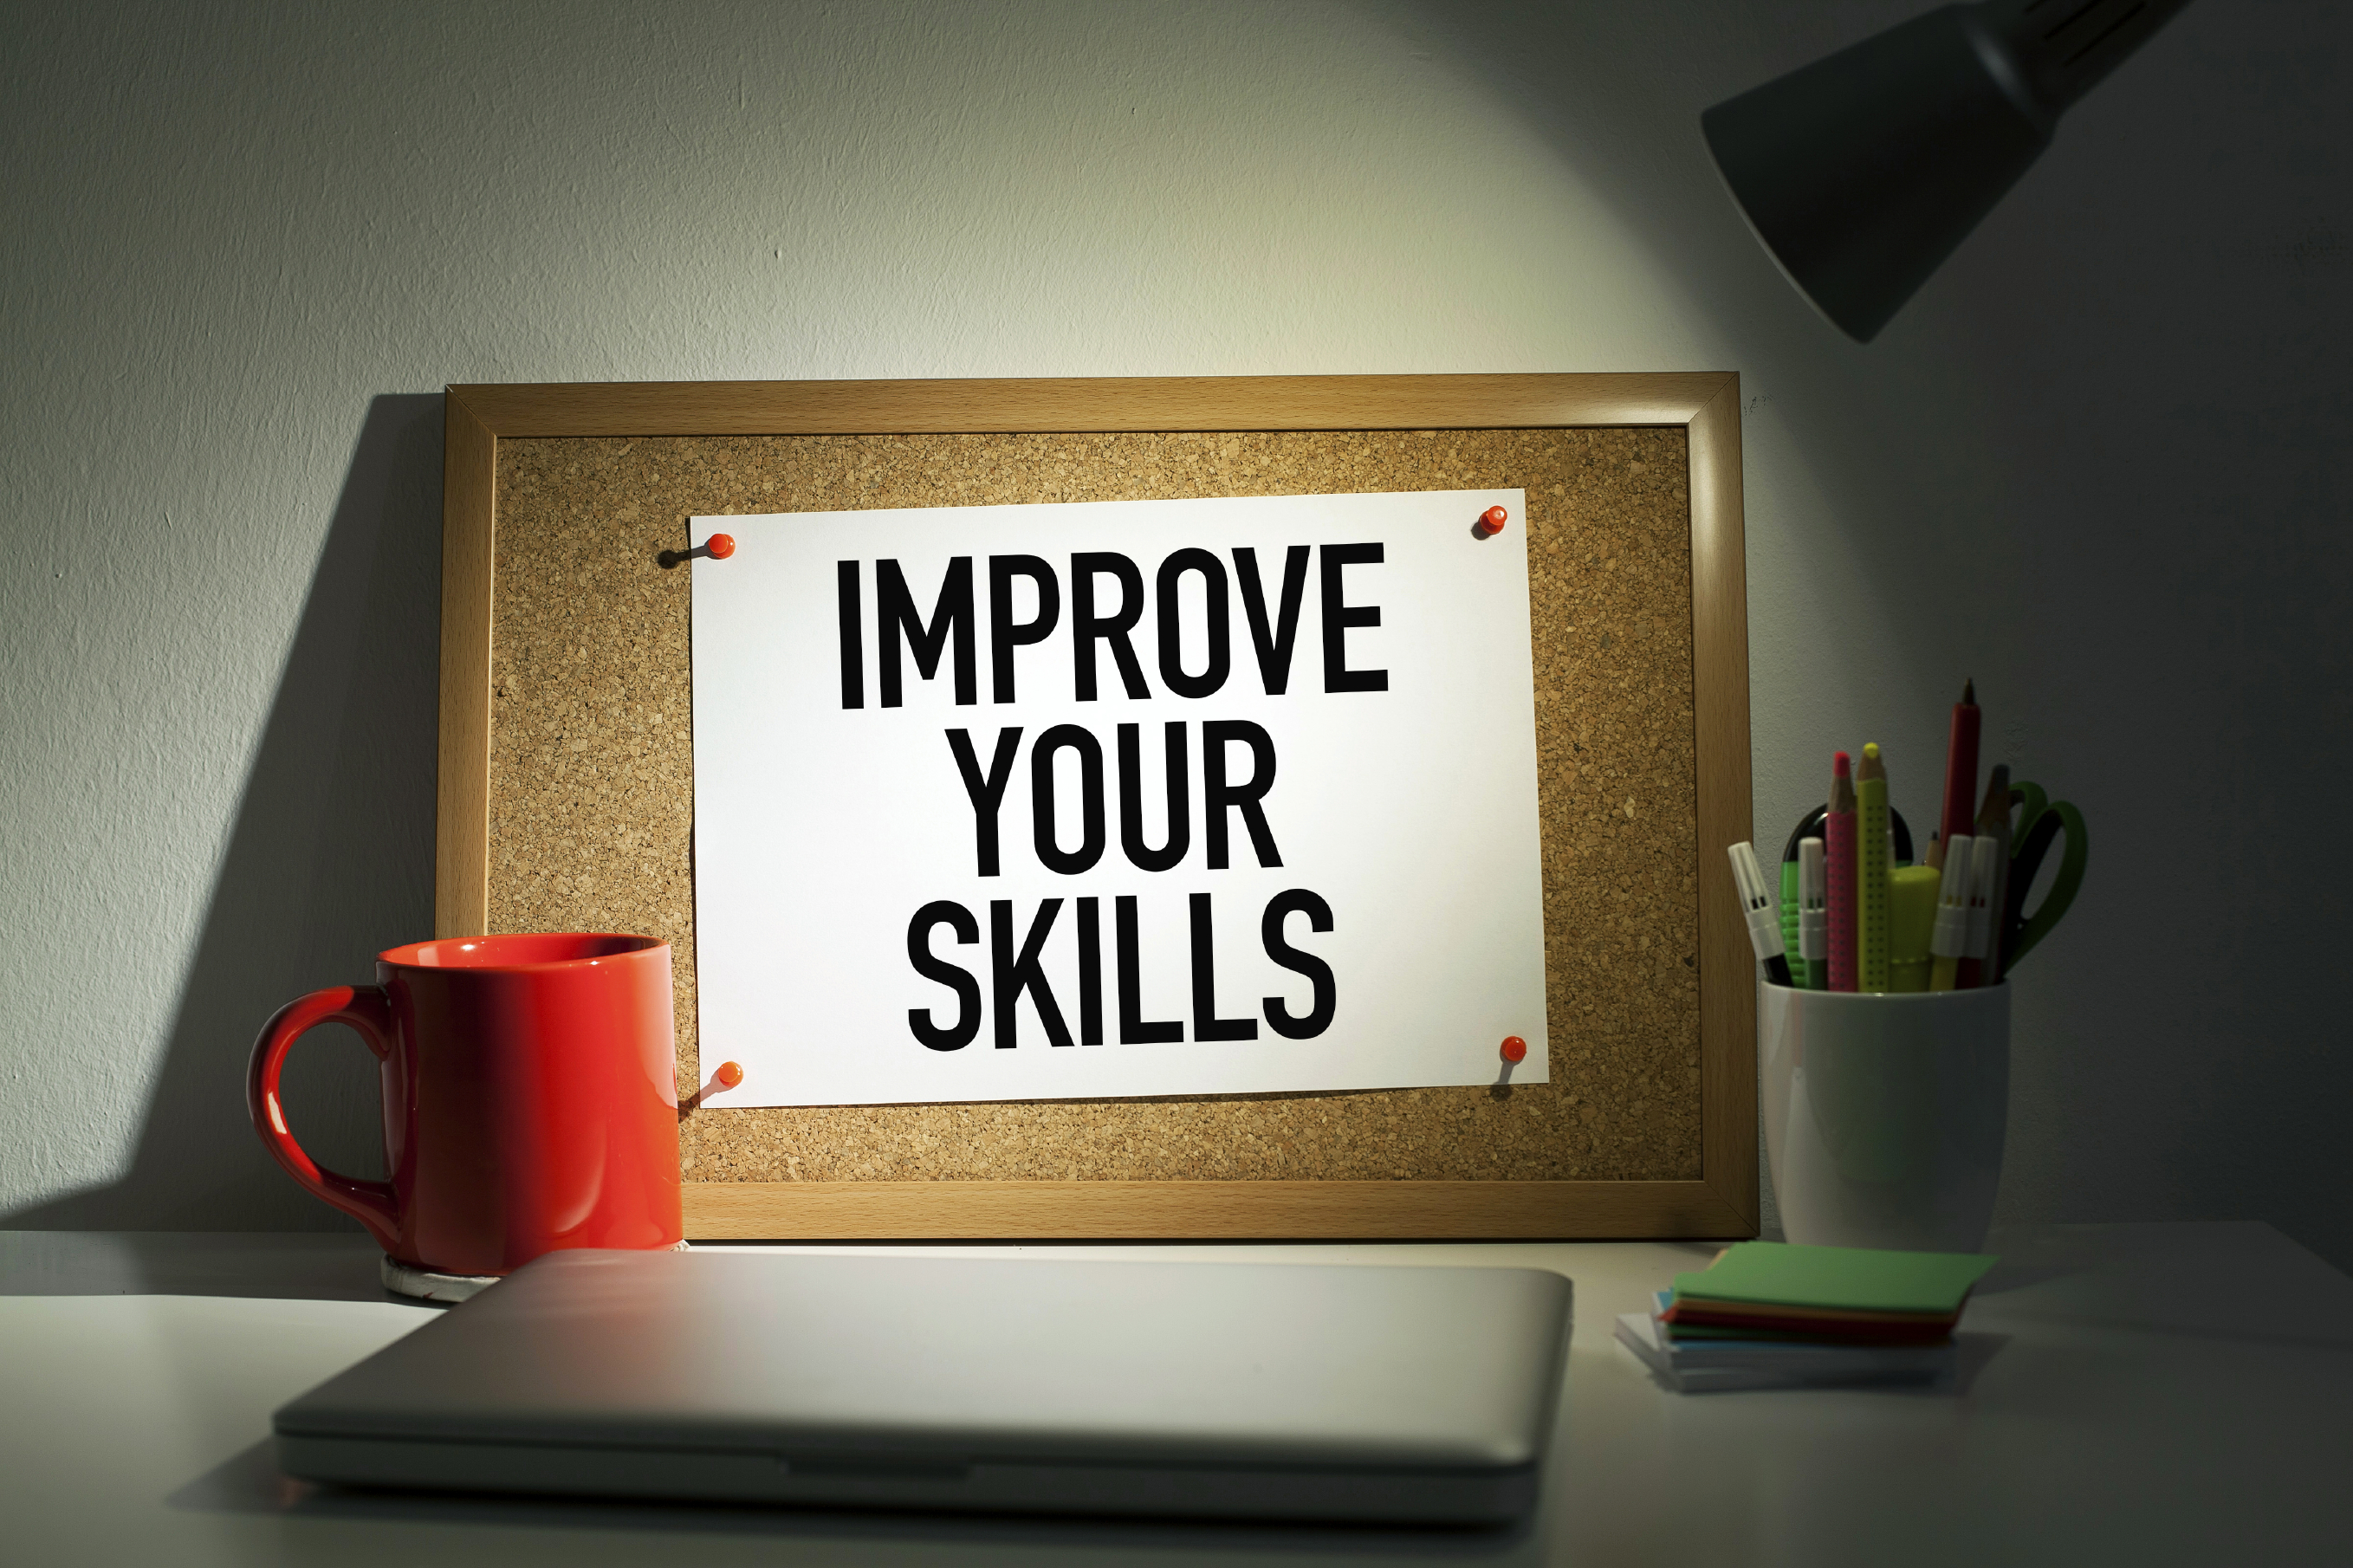 skills training - How Did You Improve Your Skills What Have You Done To Develop Your Skills